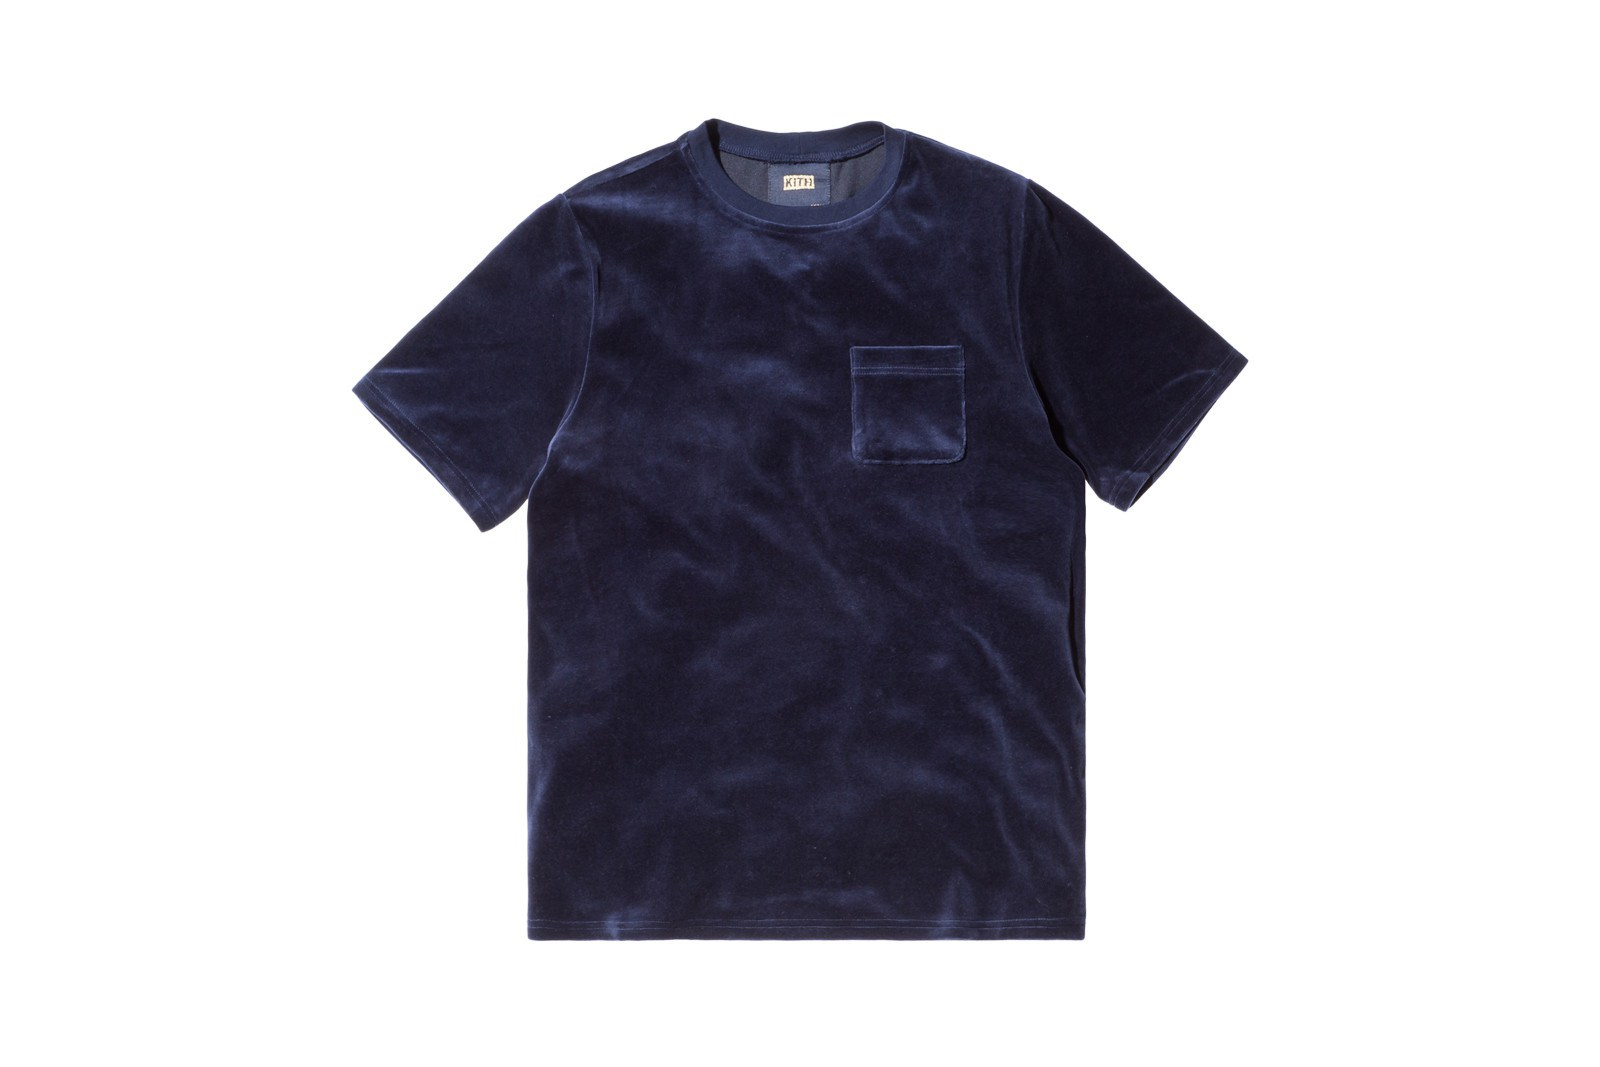 kith-special-velour-capsule-collection-8